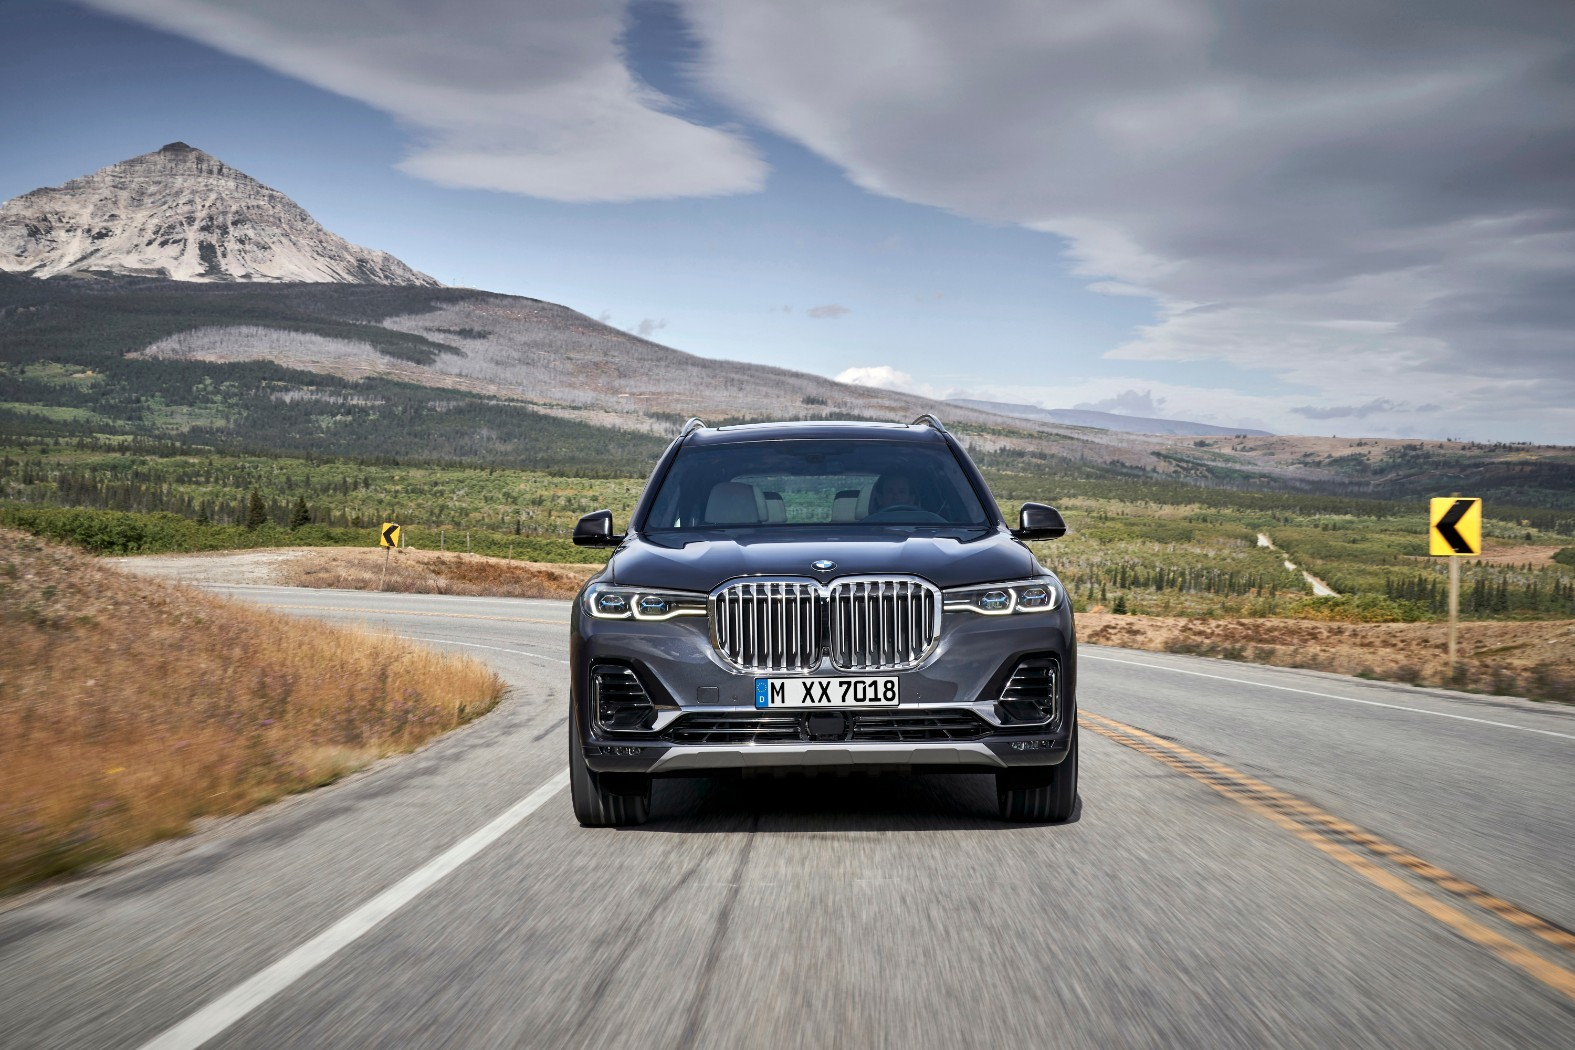 2020 BMW X7 G07 Goes Official With 7 Seats And Gigantic Kidney Grilles - autoevolution